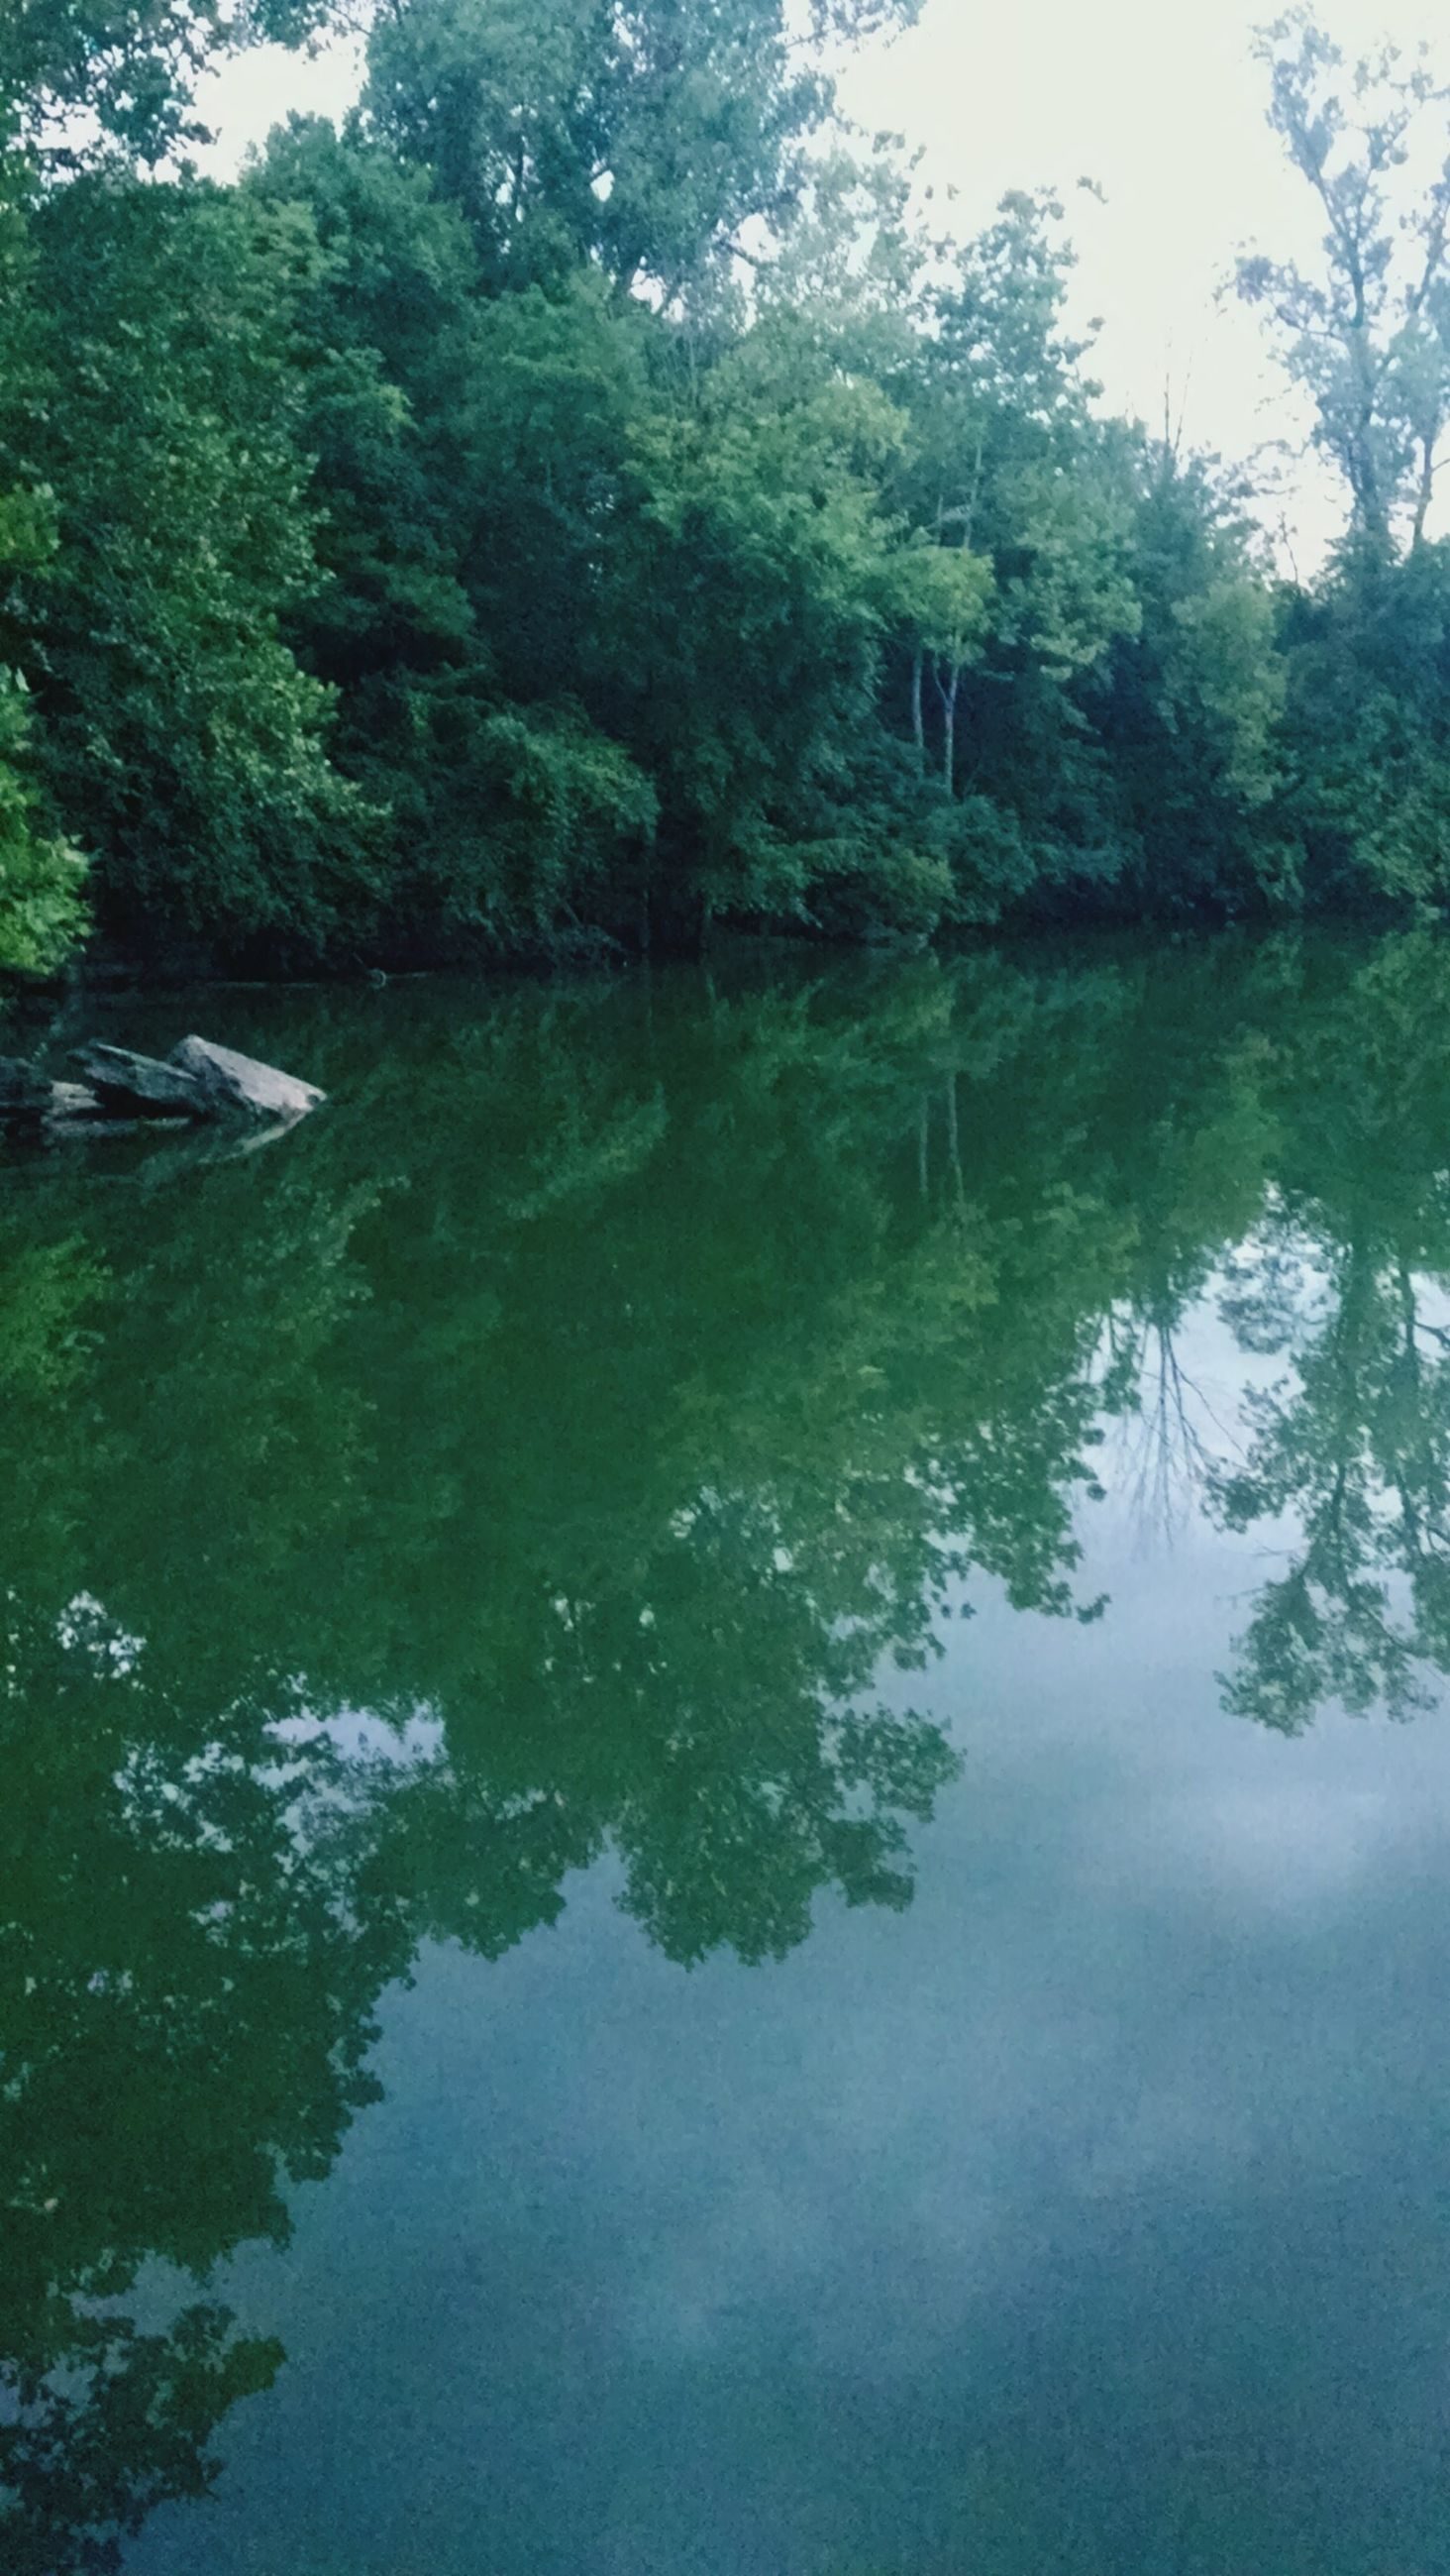 water, tree, reflection, tranquility, lake, tranquil scene, beauty in nature, scenics, waterfront, nature, growth, river, forest, green color, idyllic, standing water, day, calm, outdoors, sky